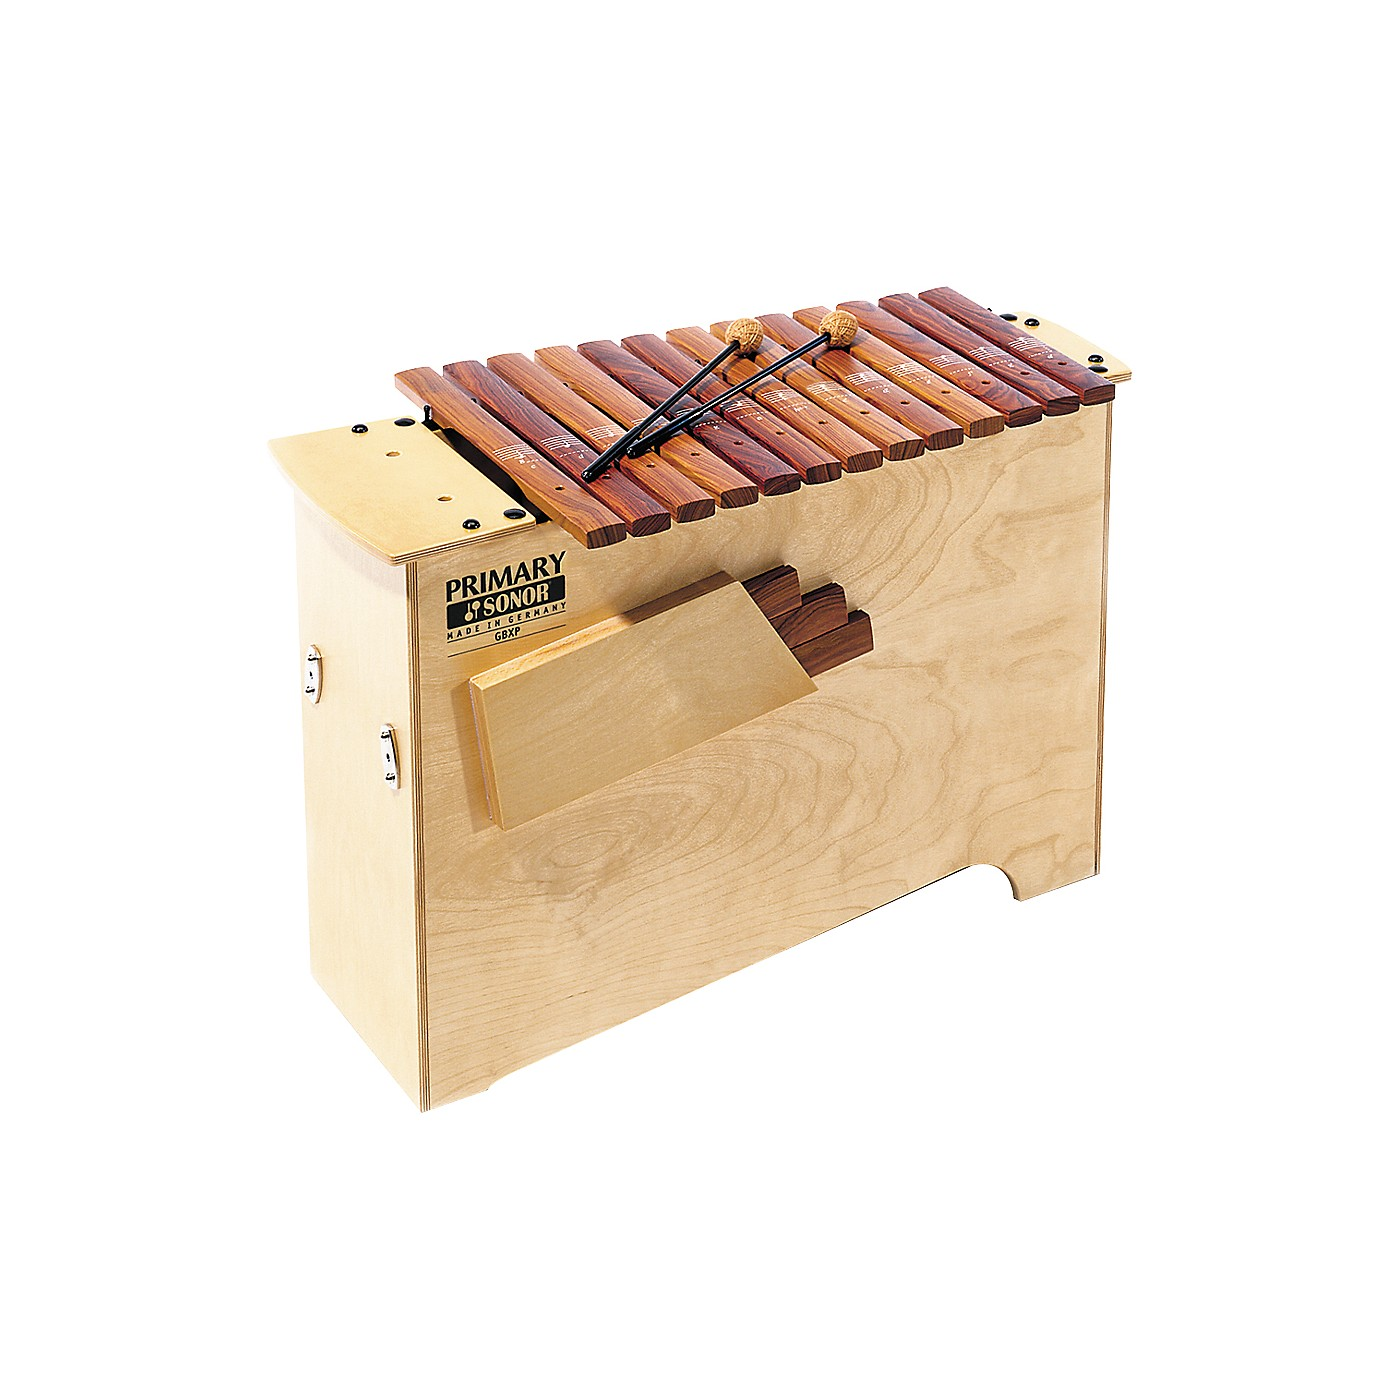 Sonor Orff GBXP1 Diatonic Deep Bass Xylophone thumbnail